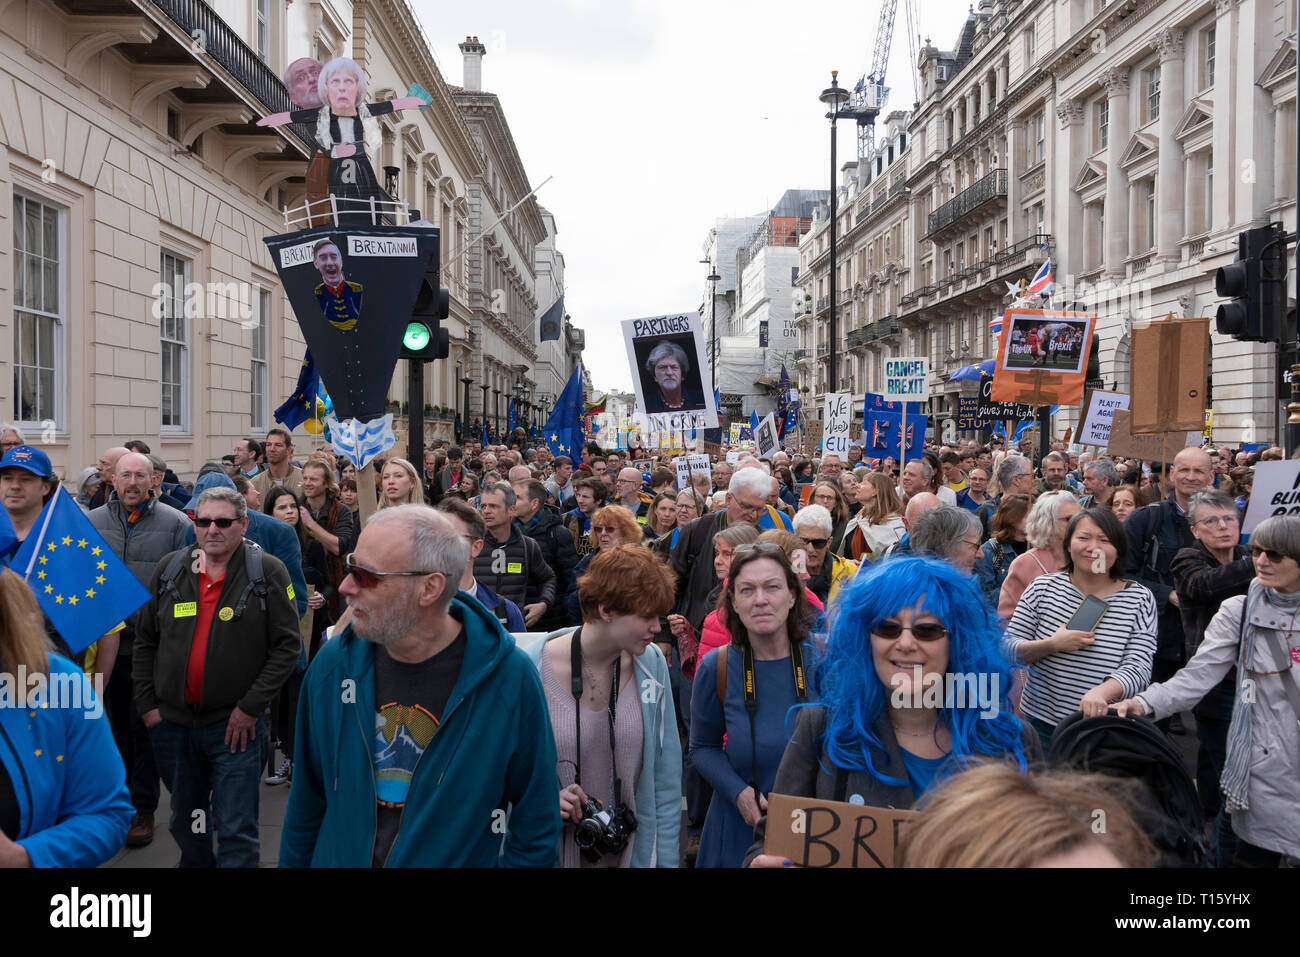 London, UK. 23rd Mar, 2019. Peoples Vote March,. Crowd detail and banners as taken from the perspective of a protester. Remain banners, second referendum. Credit: Tony Pincham/Alamy Live News - Stock Image